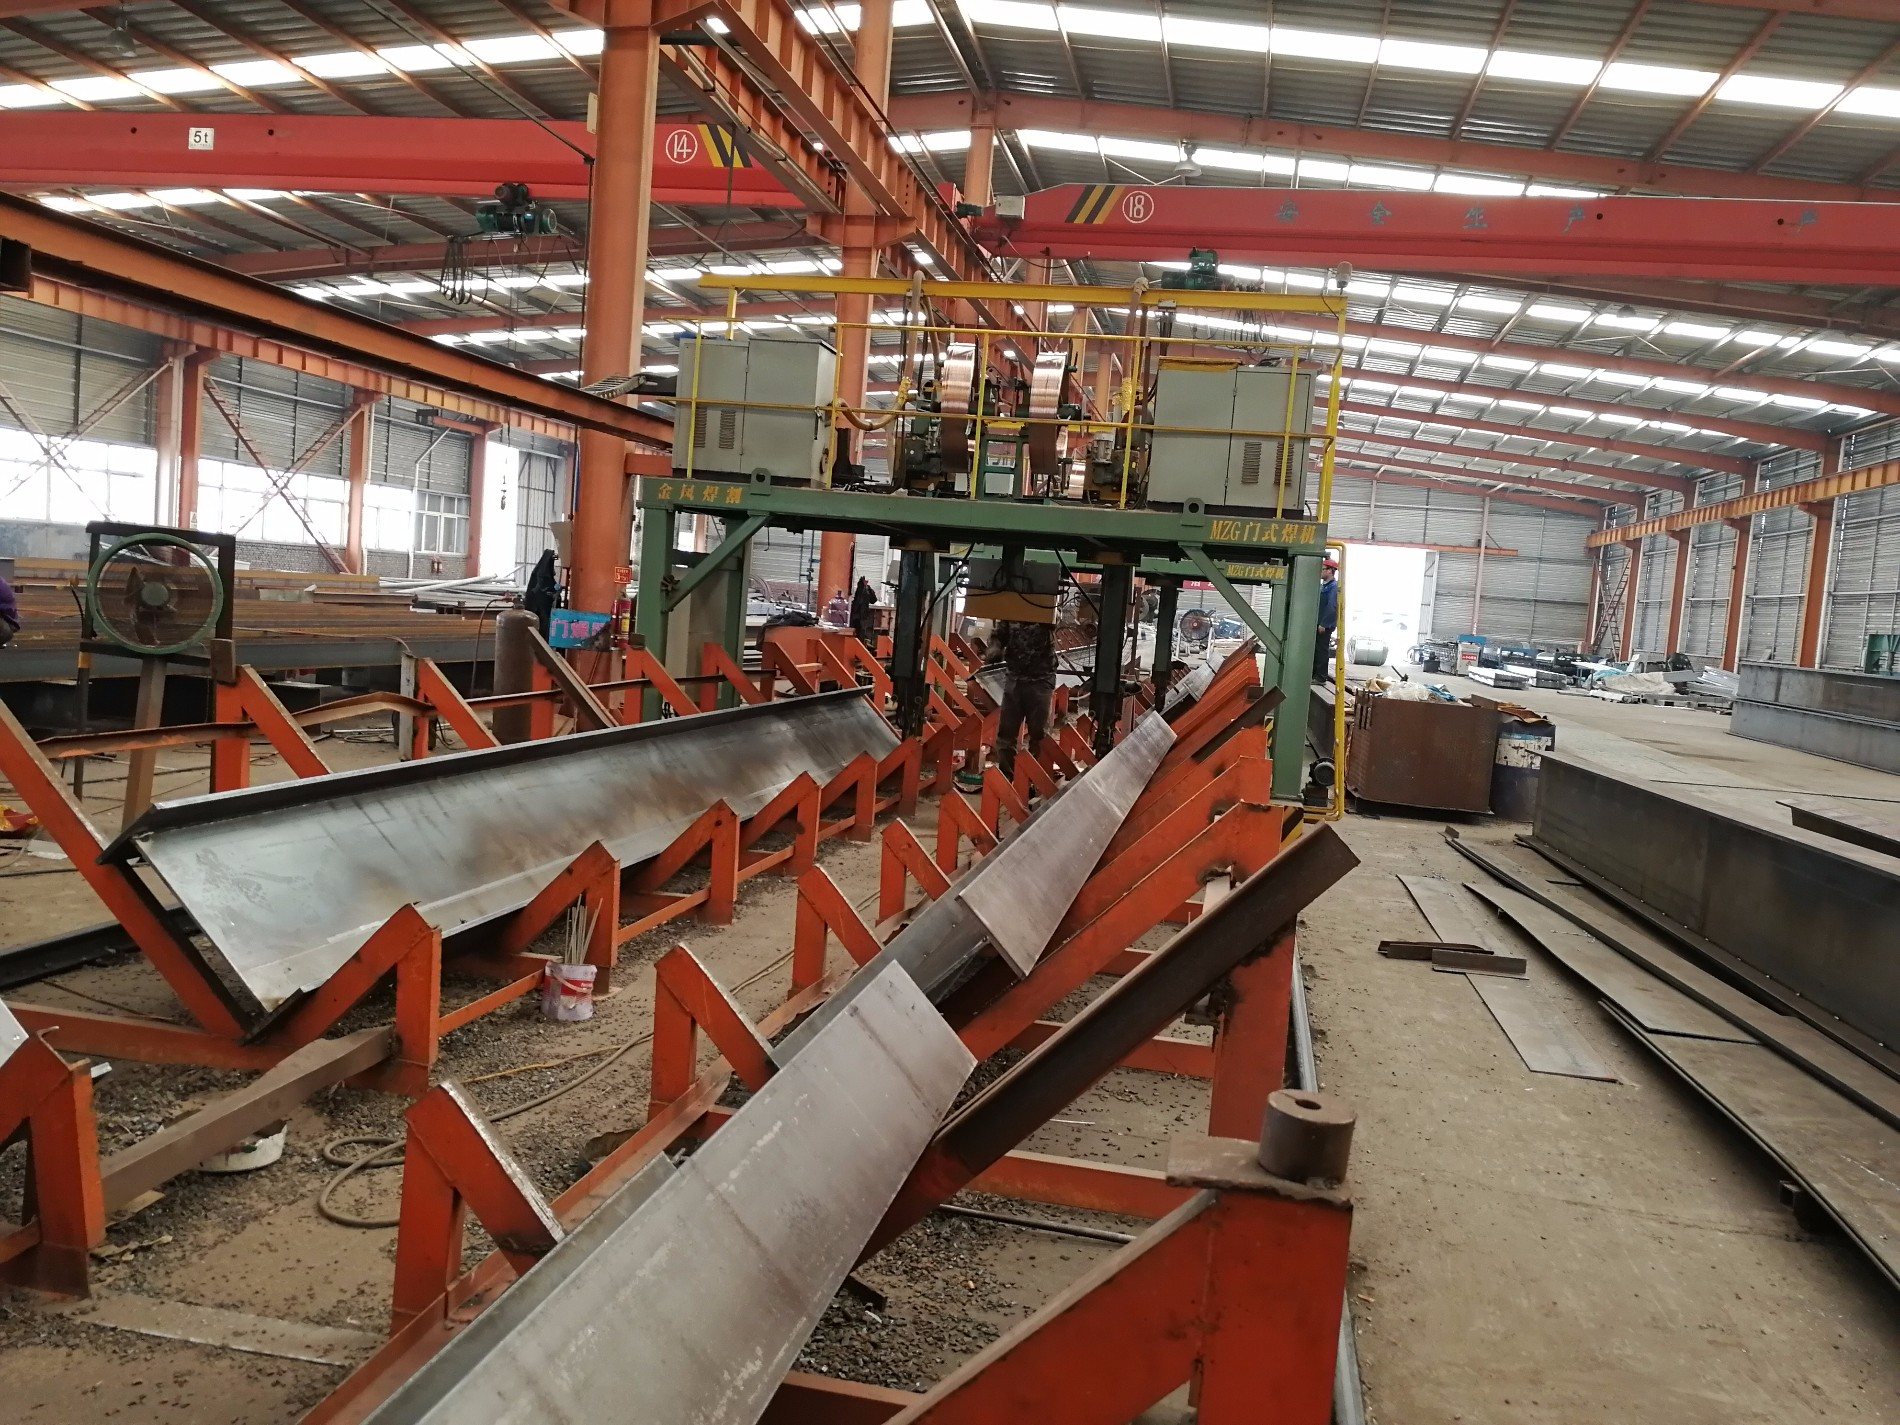 High quality Hot Sale and Economic Building Metalstructure Workshop Warehouse Quotes,China Hot Sale and Economic Building Metalstructure Workshop Warehouse Factory,Hot Sale and Economic Building Metalstructure Workshop Warehouse Purchasing